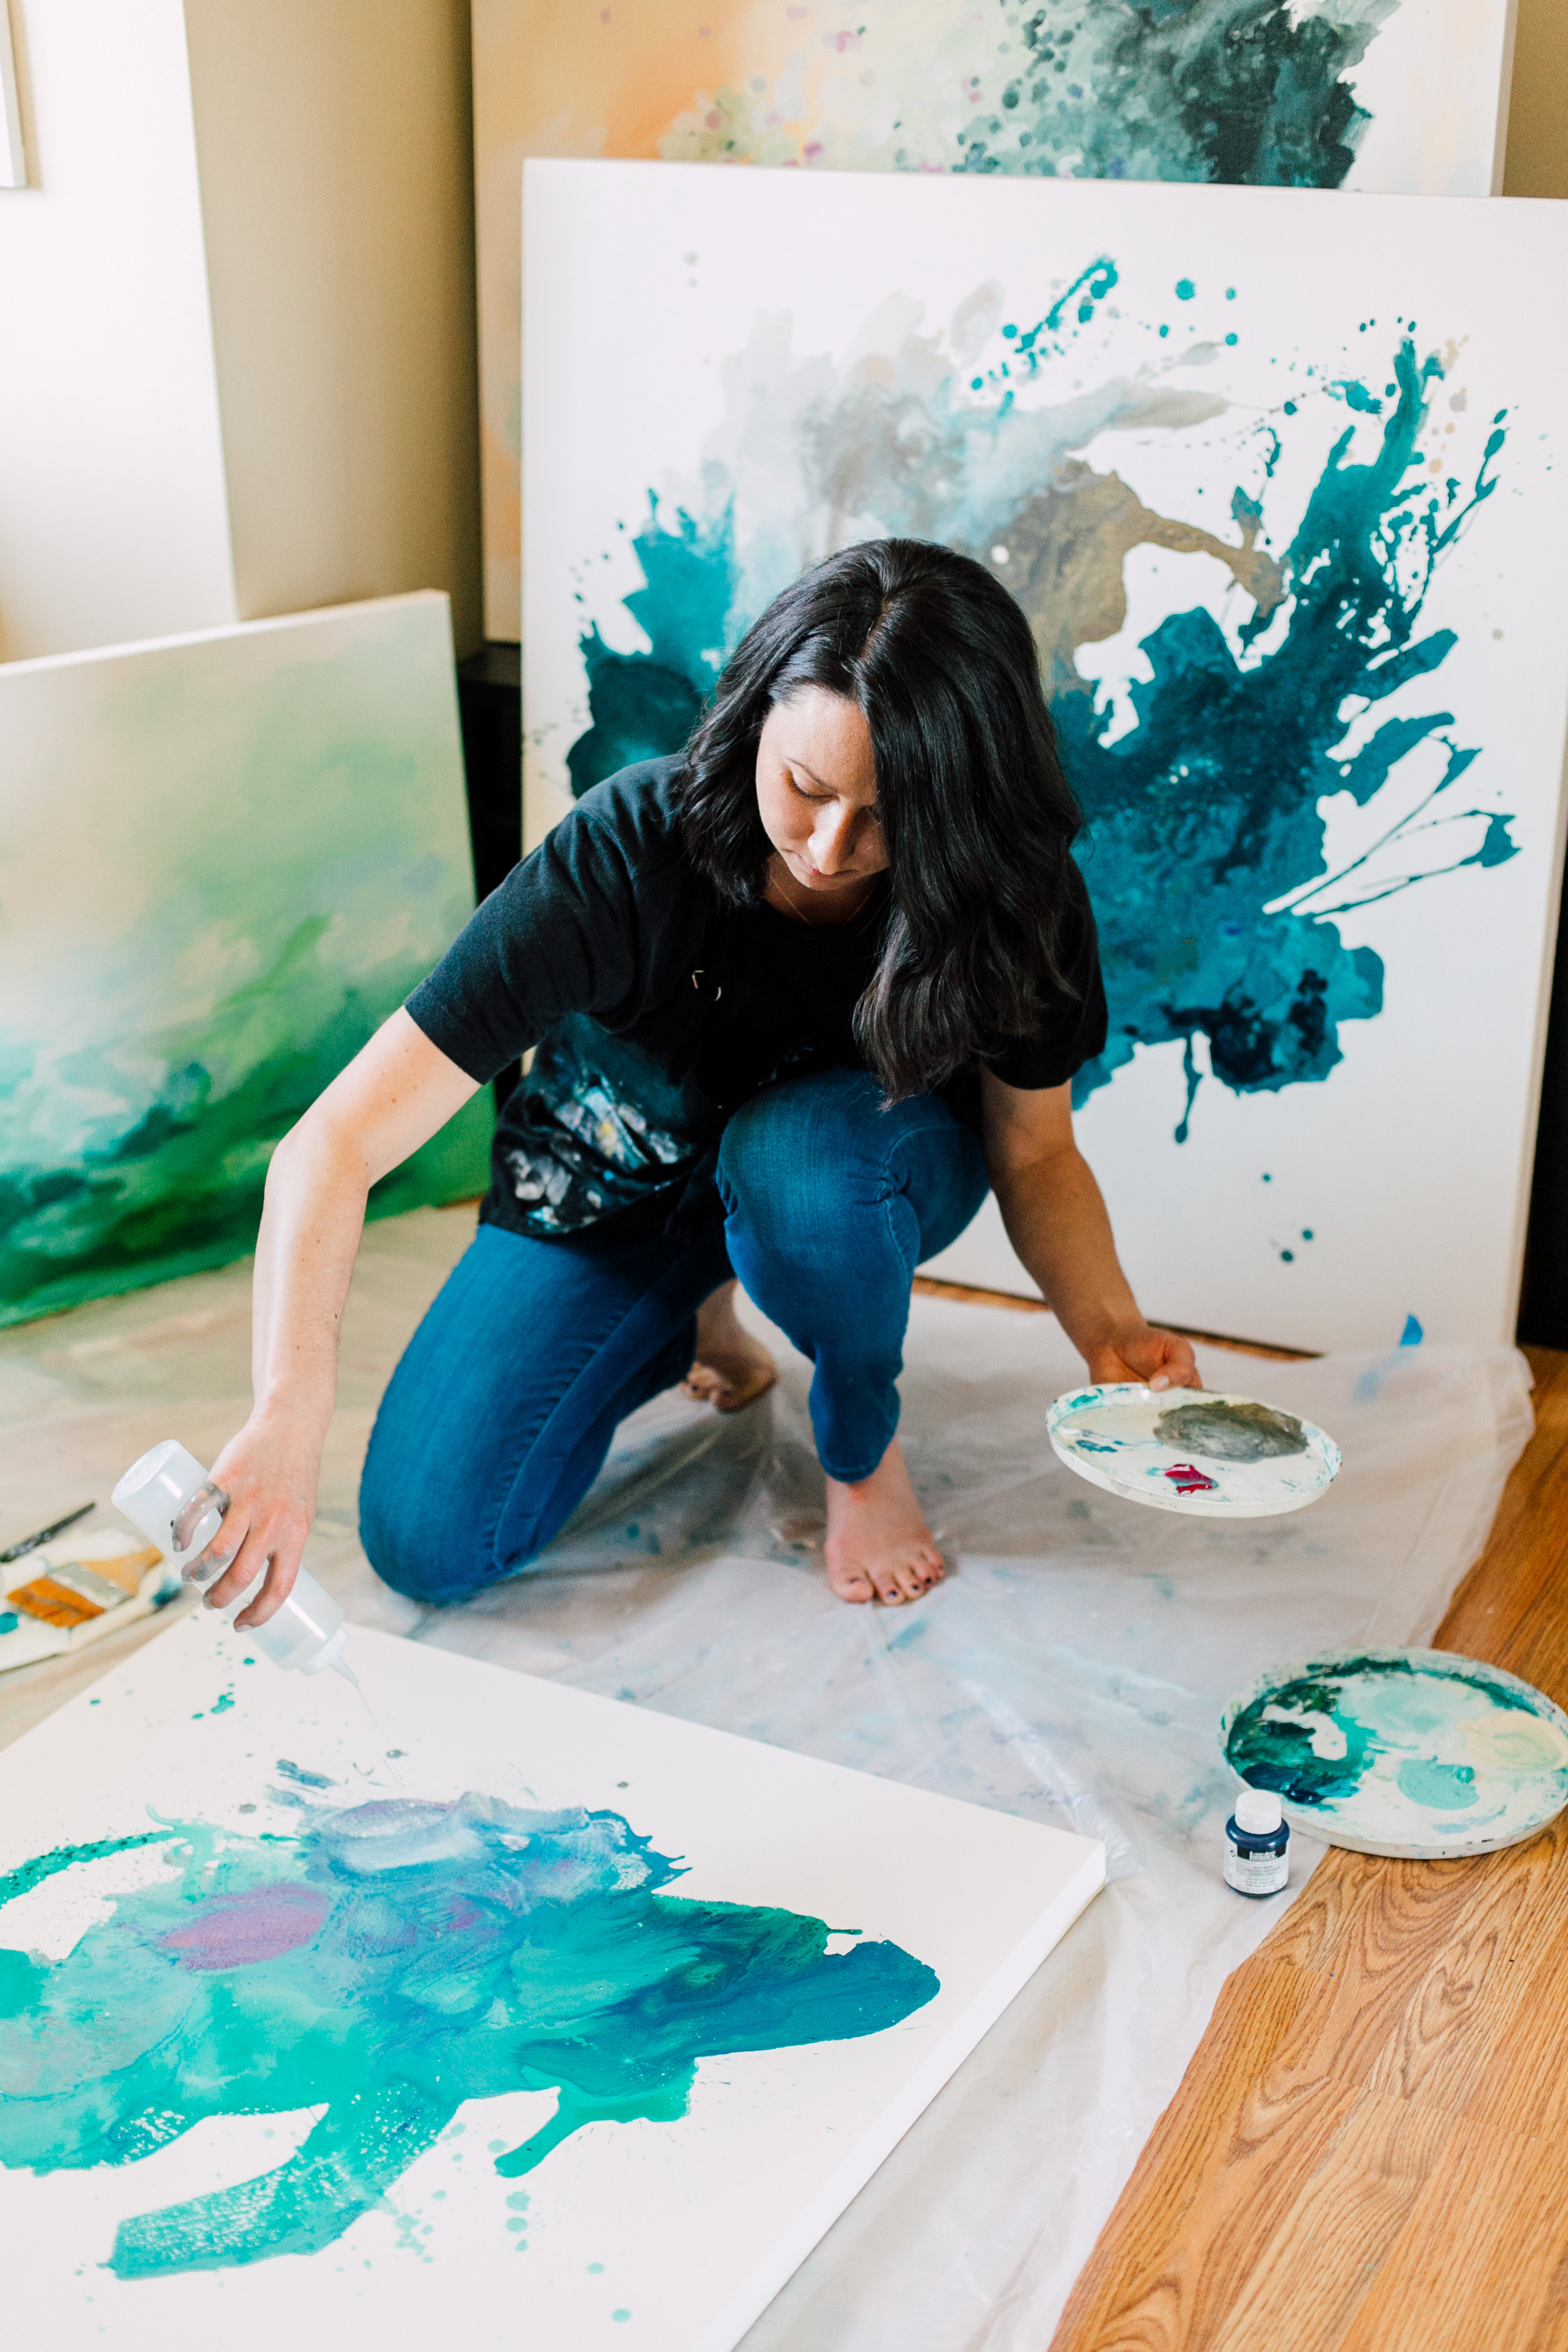 3 ways to get unstuck and out of a creative rut - Kendra Castillo